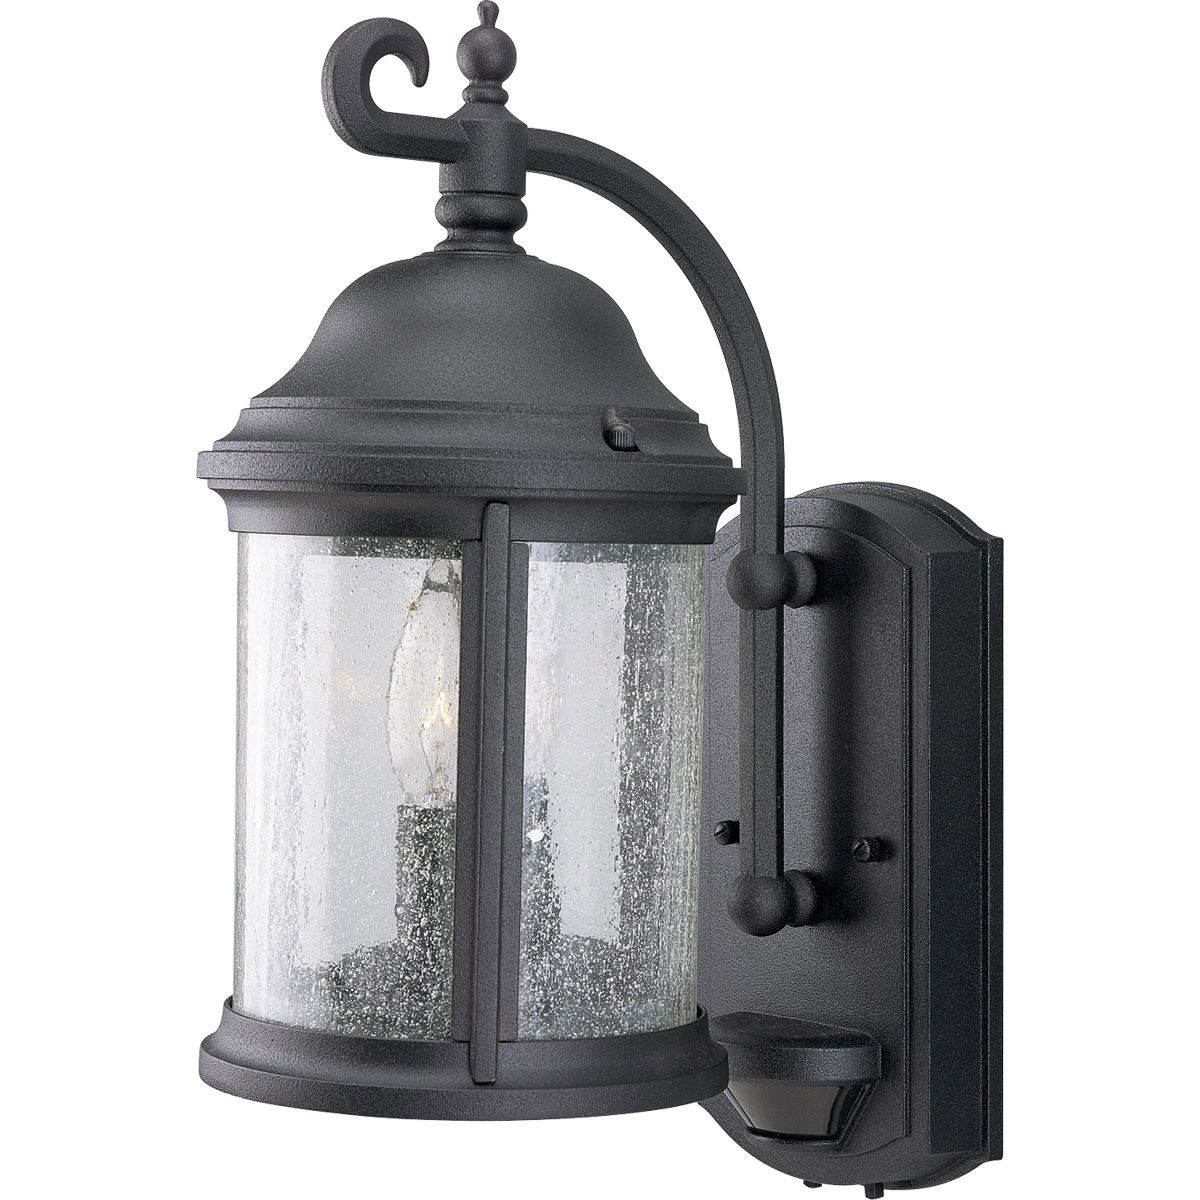 2018 Outdoor Wall Security Lights Regarding Motion Sensor Outdoor Light Sensing Security Lights Recalled (View 17 of 20)